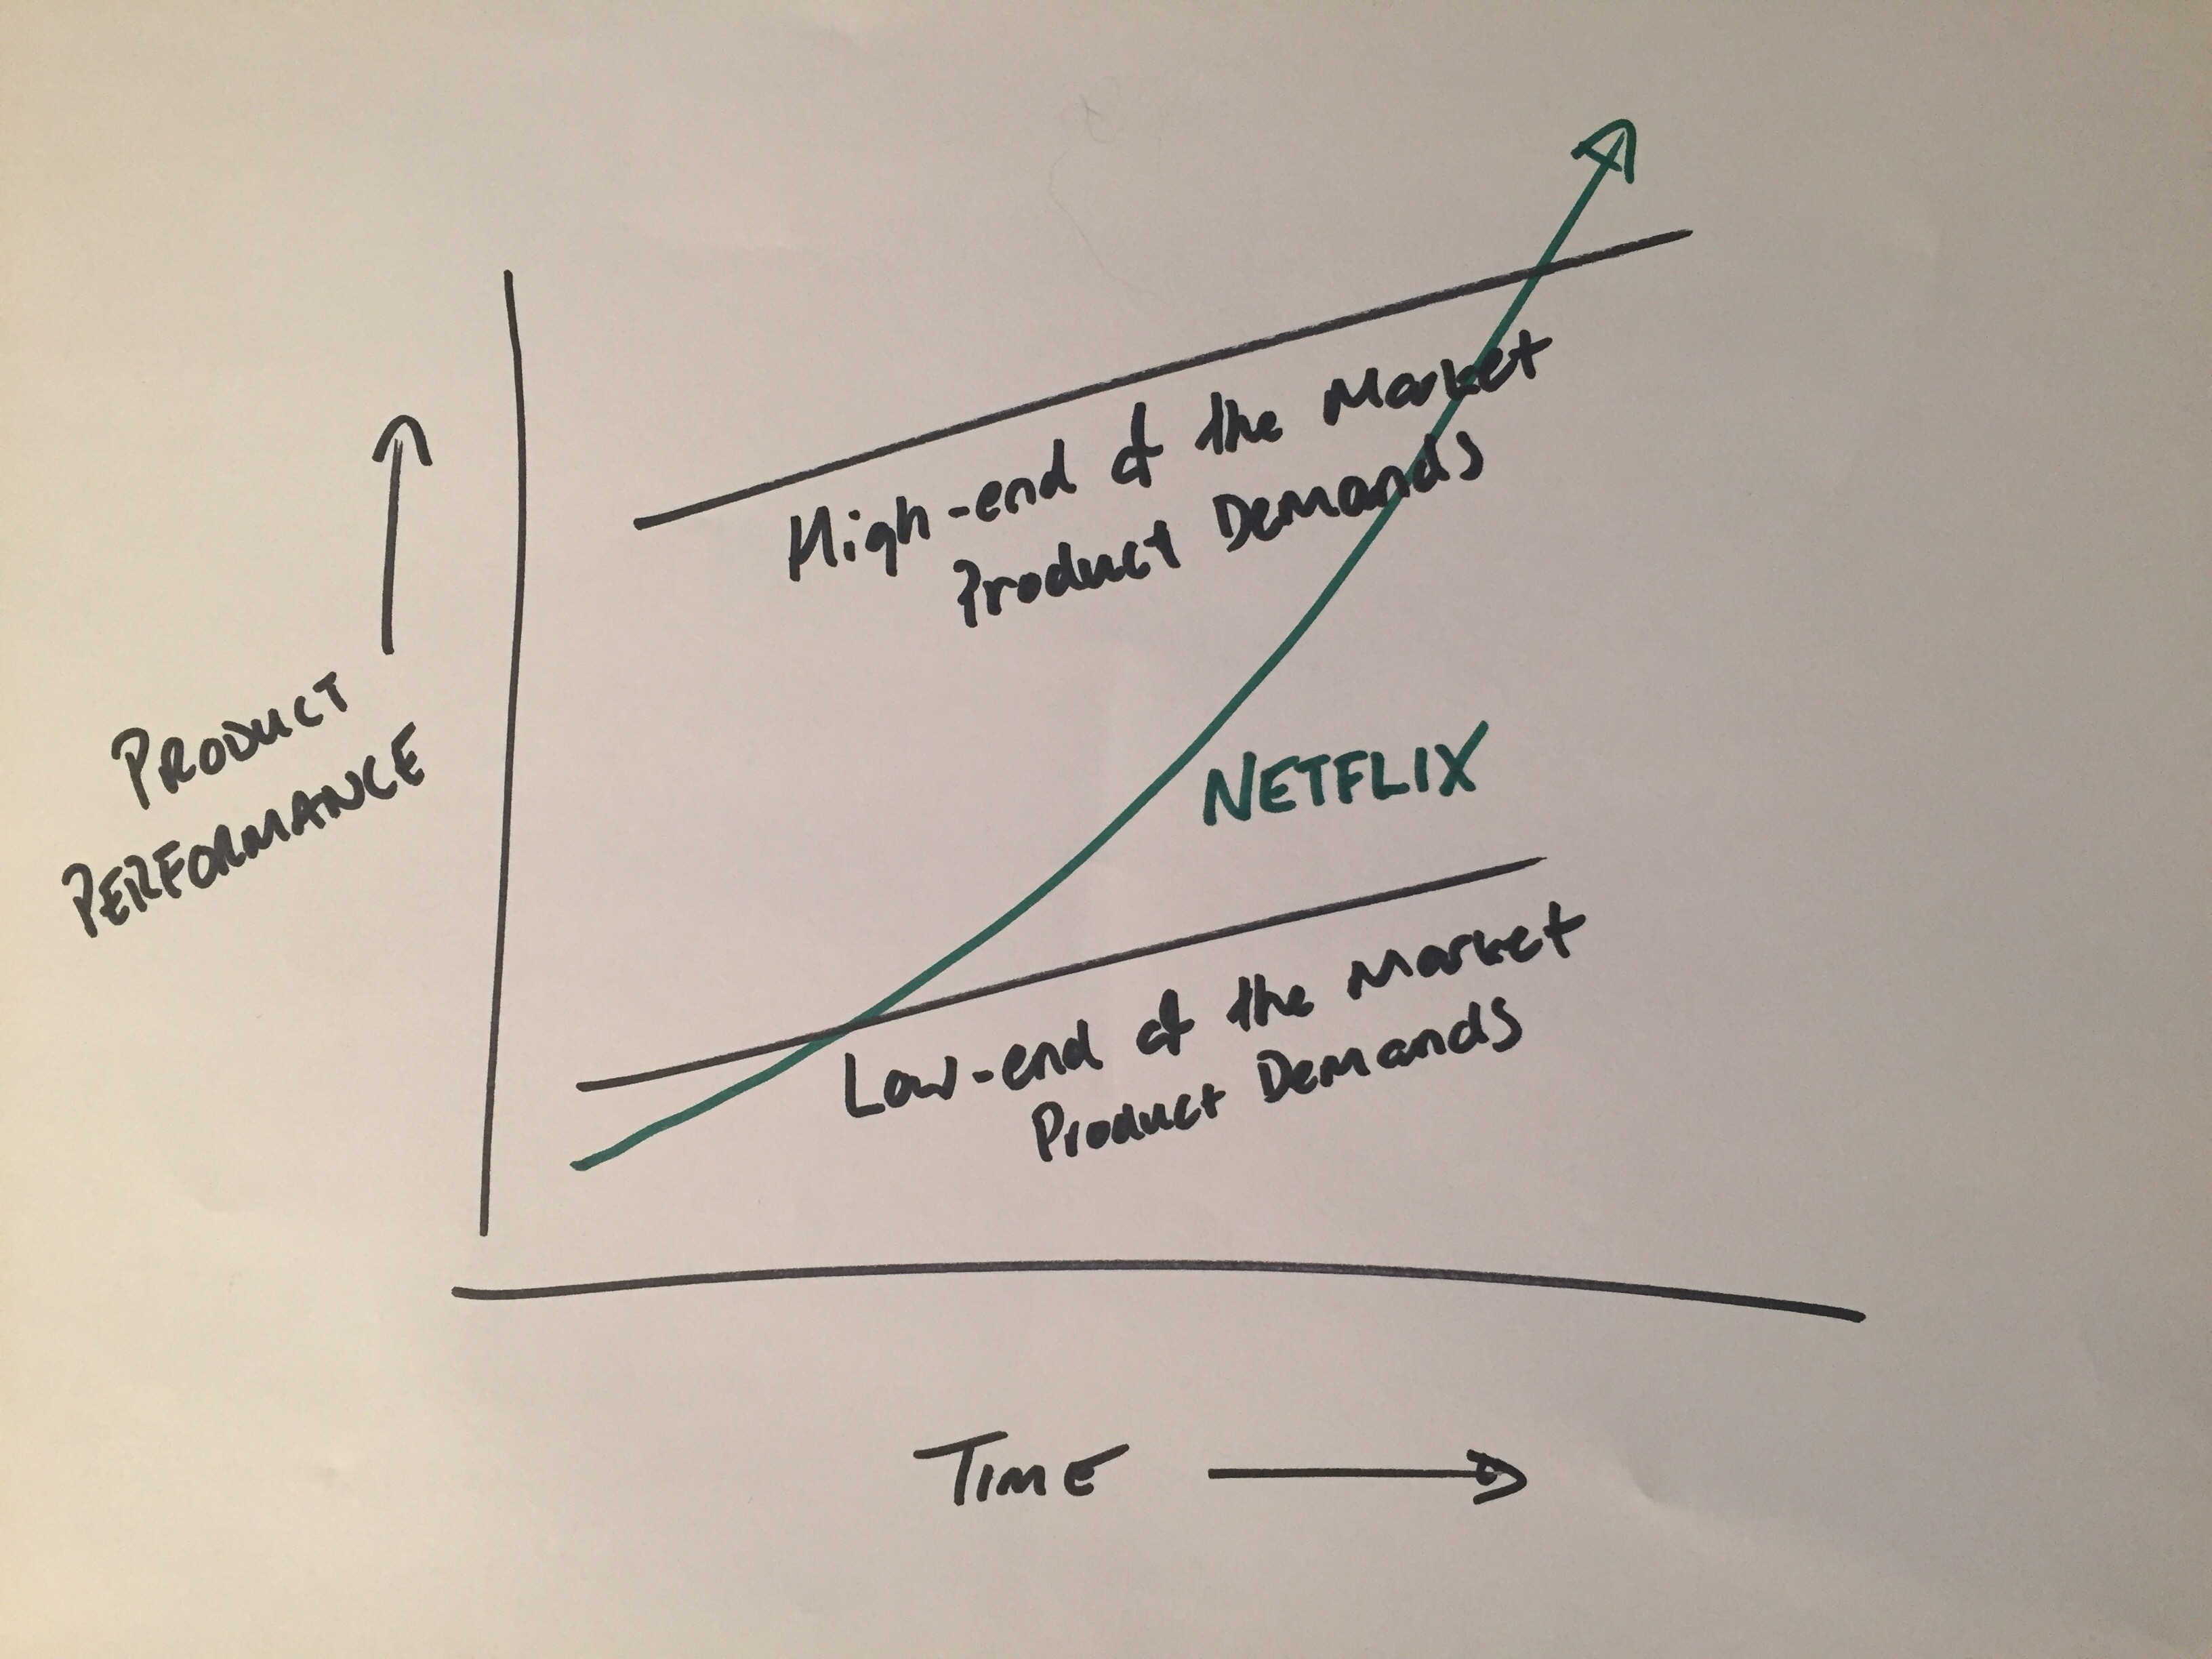 netflix_disruption_path.jpg